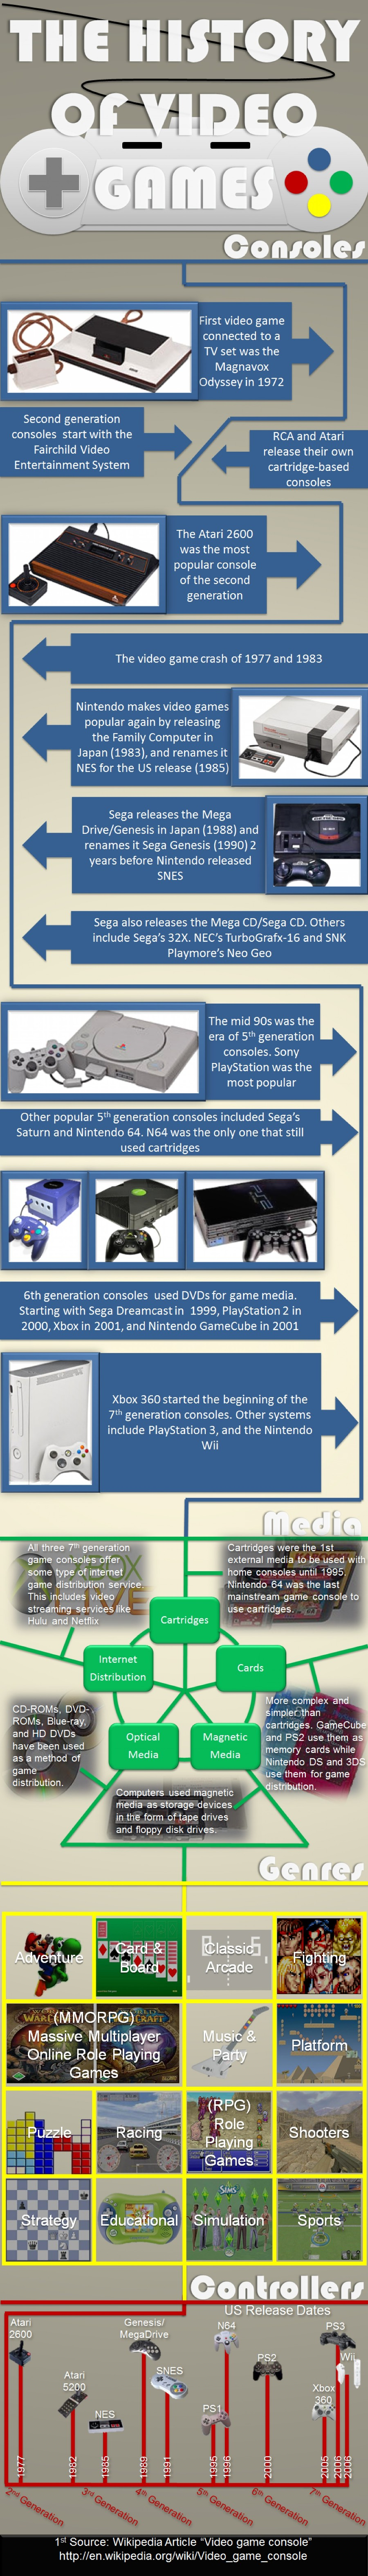 20. History of Video games